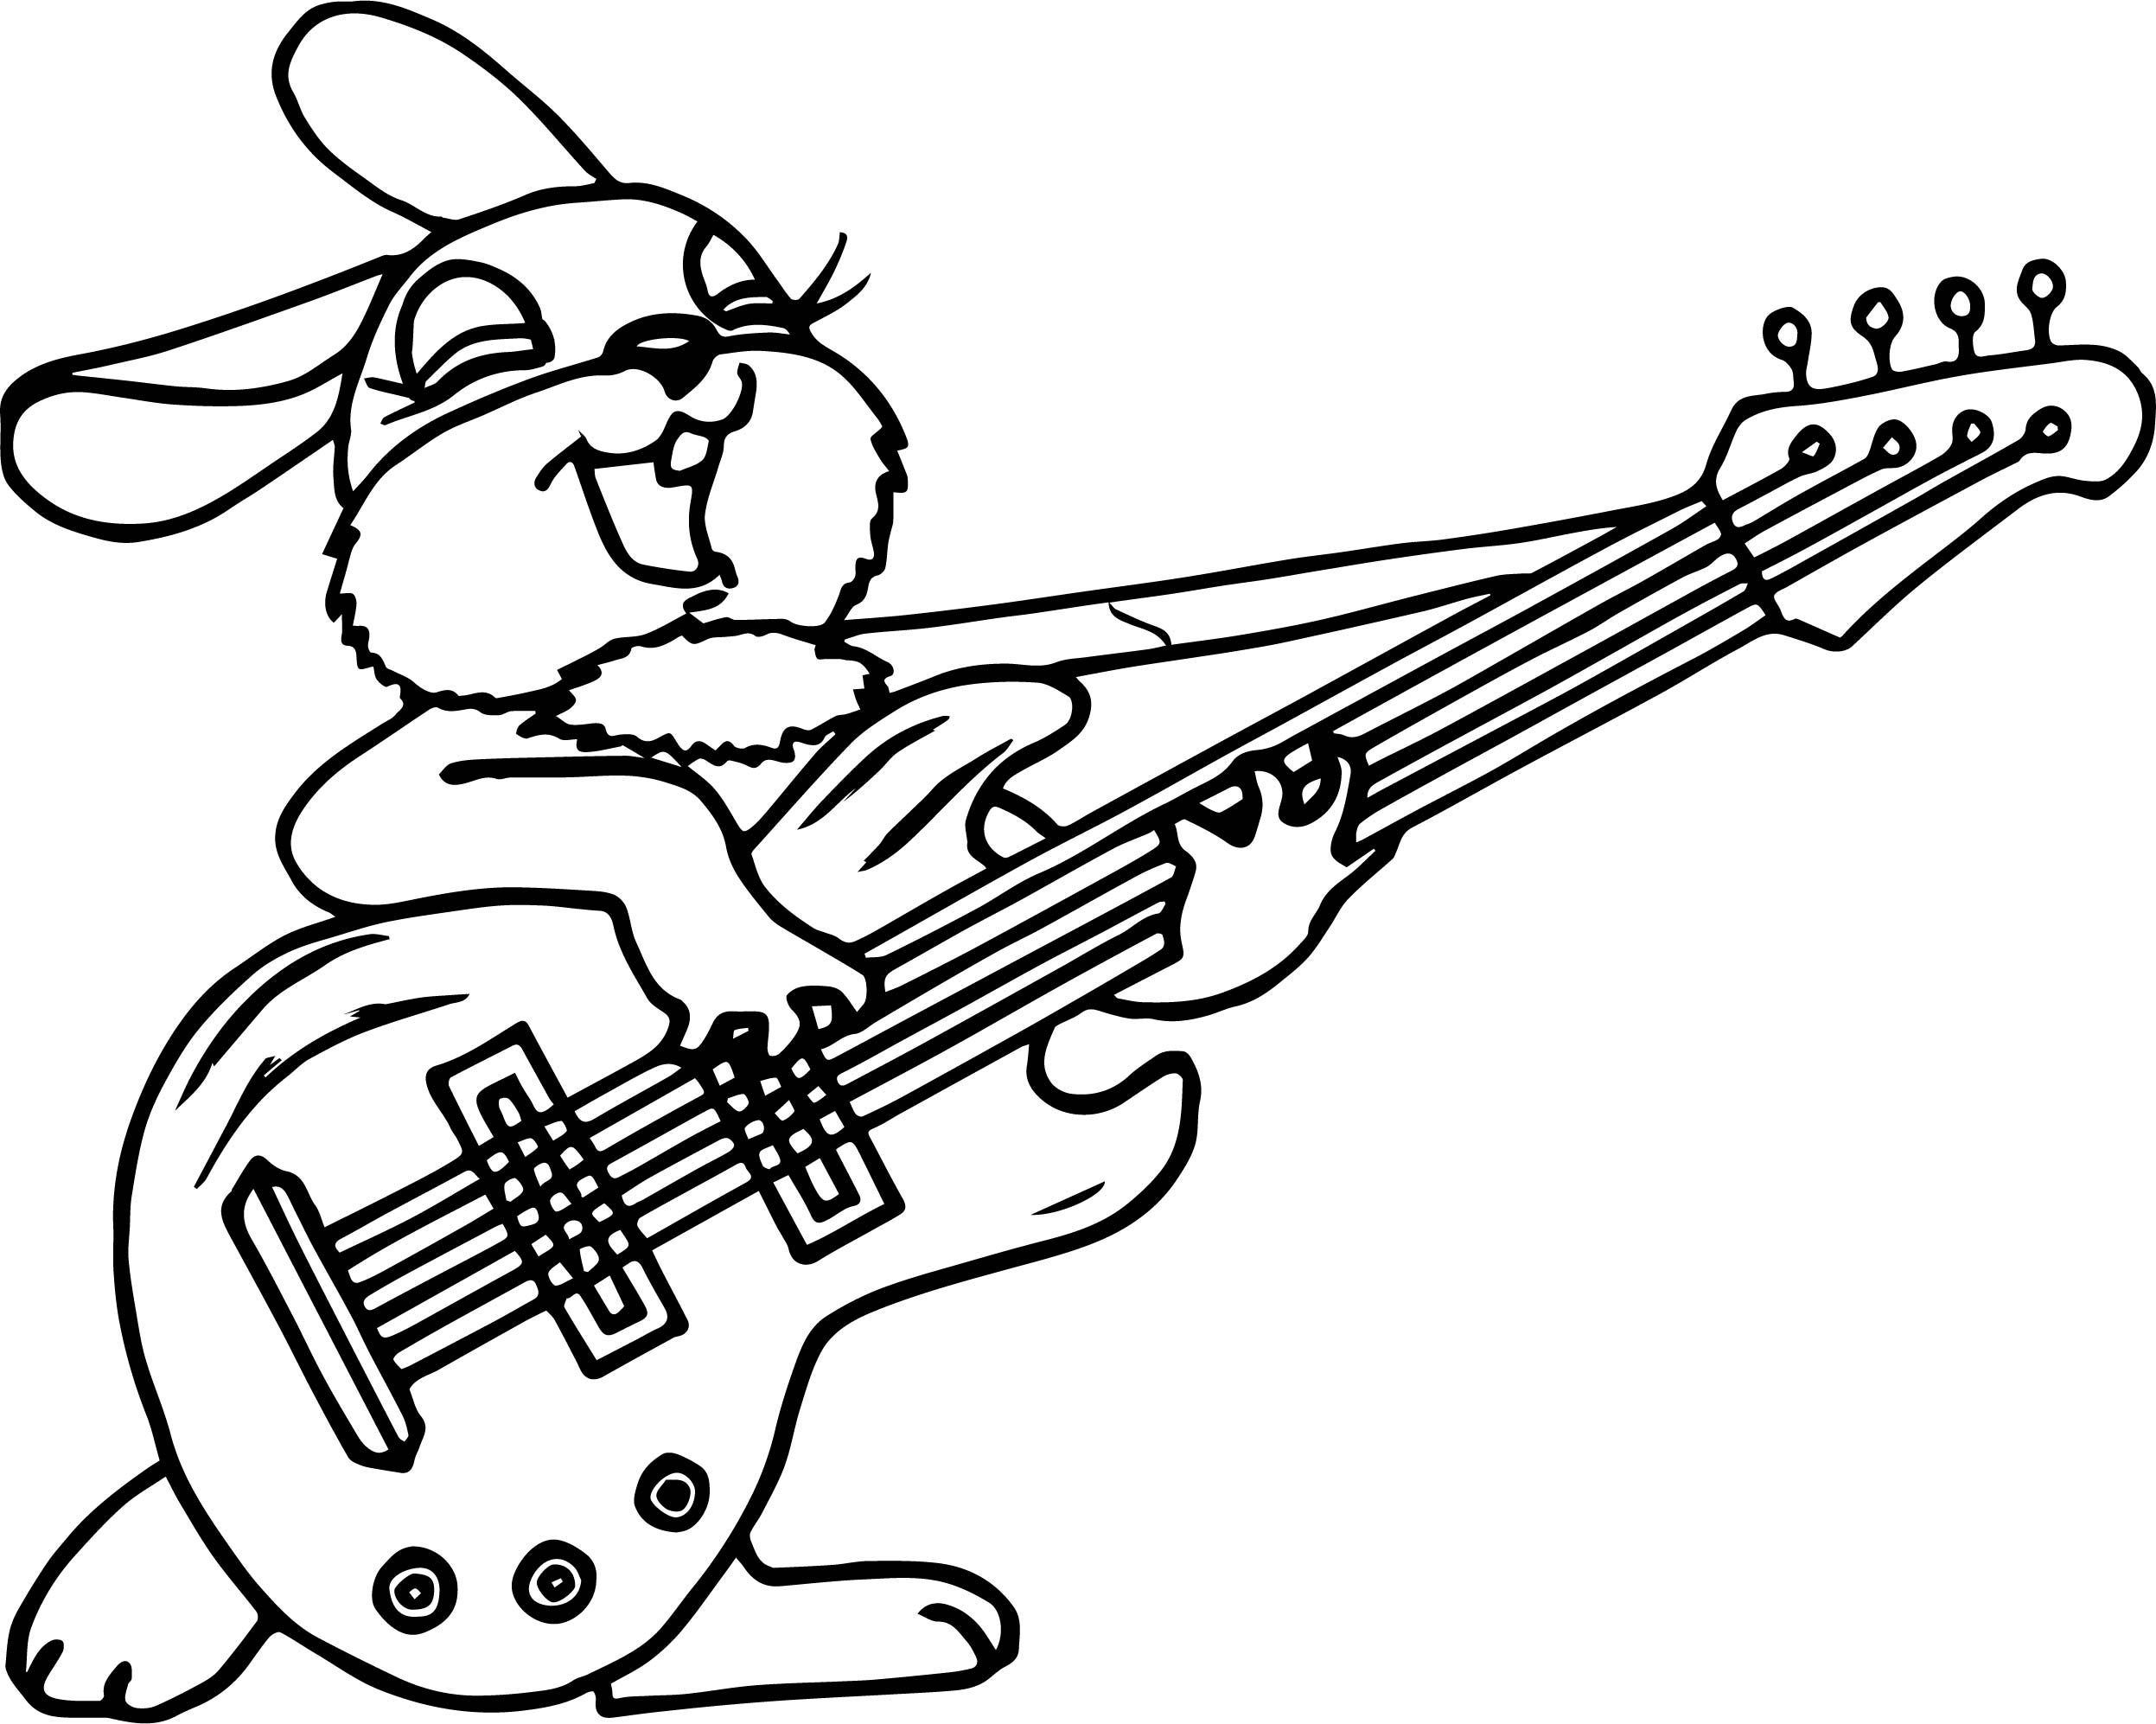 bunny anima playing the guitar coloring page wecoloringpage